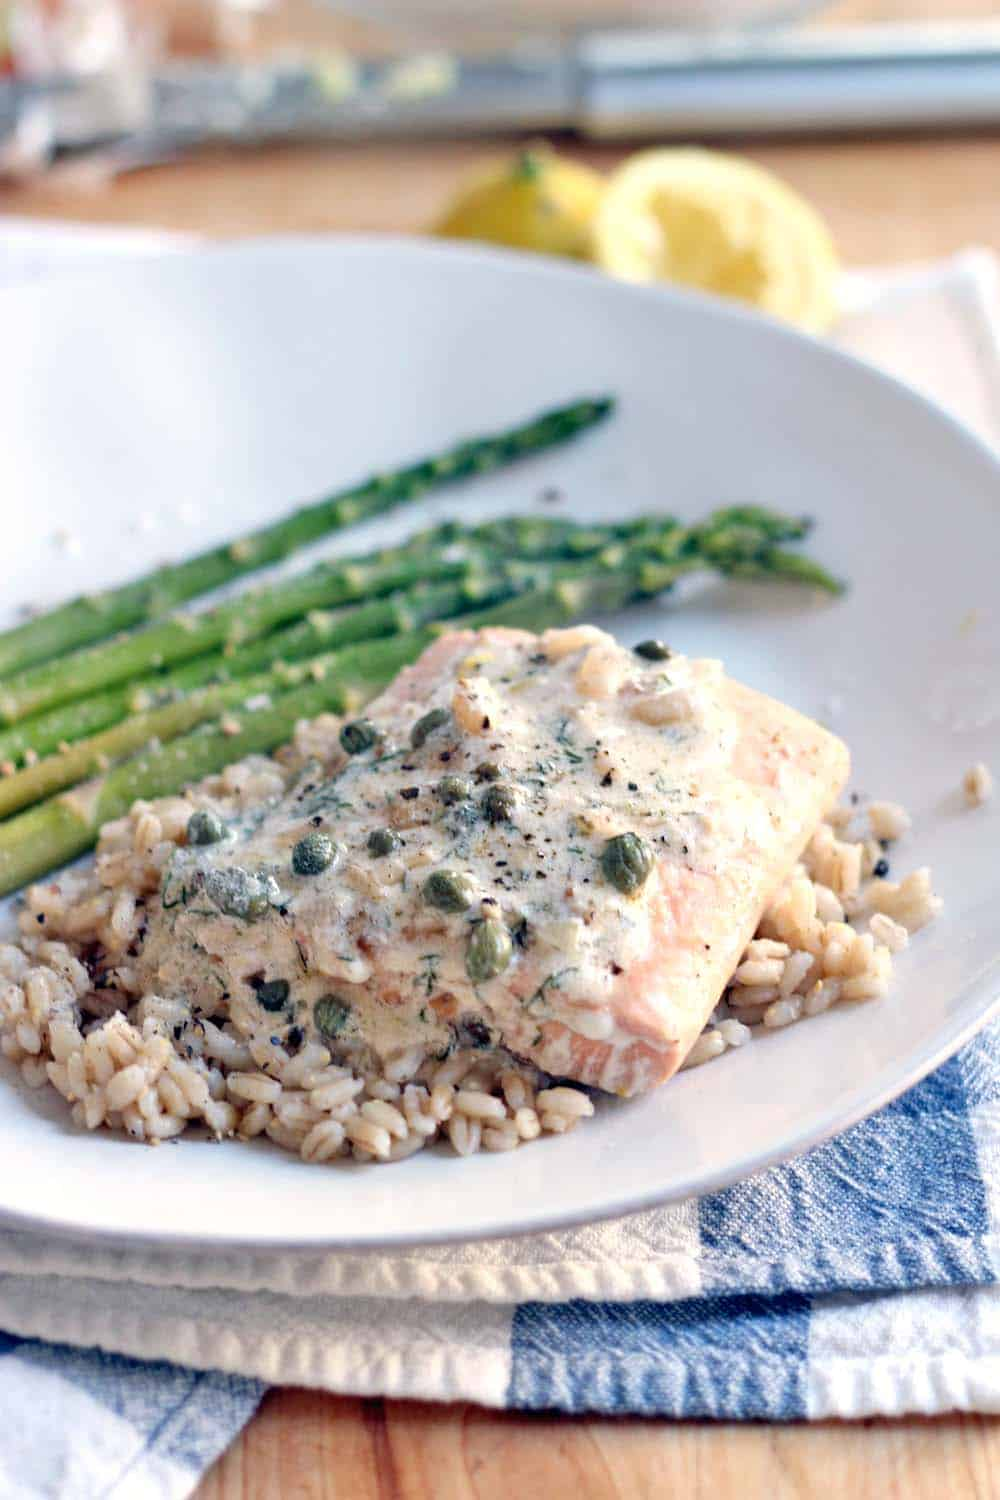 This garlic poached salmon is fast, easy, and smothered in a healthy, yogurt-based creamy lemon caper sauce! This will be your new favorite way to eat salmon.